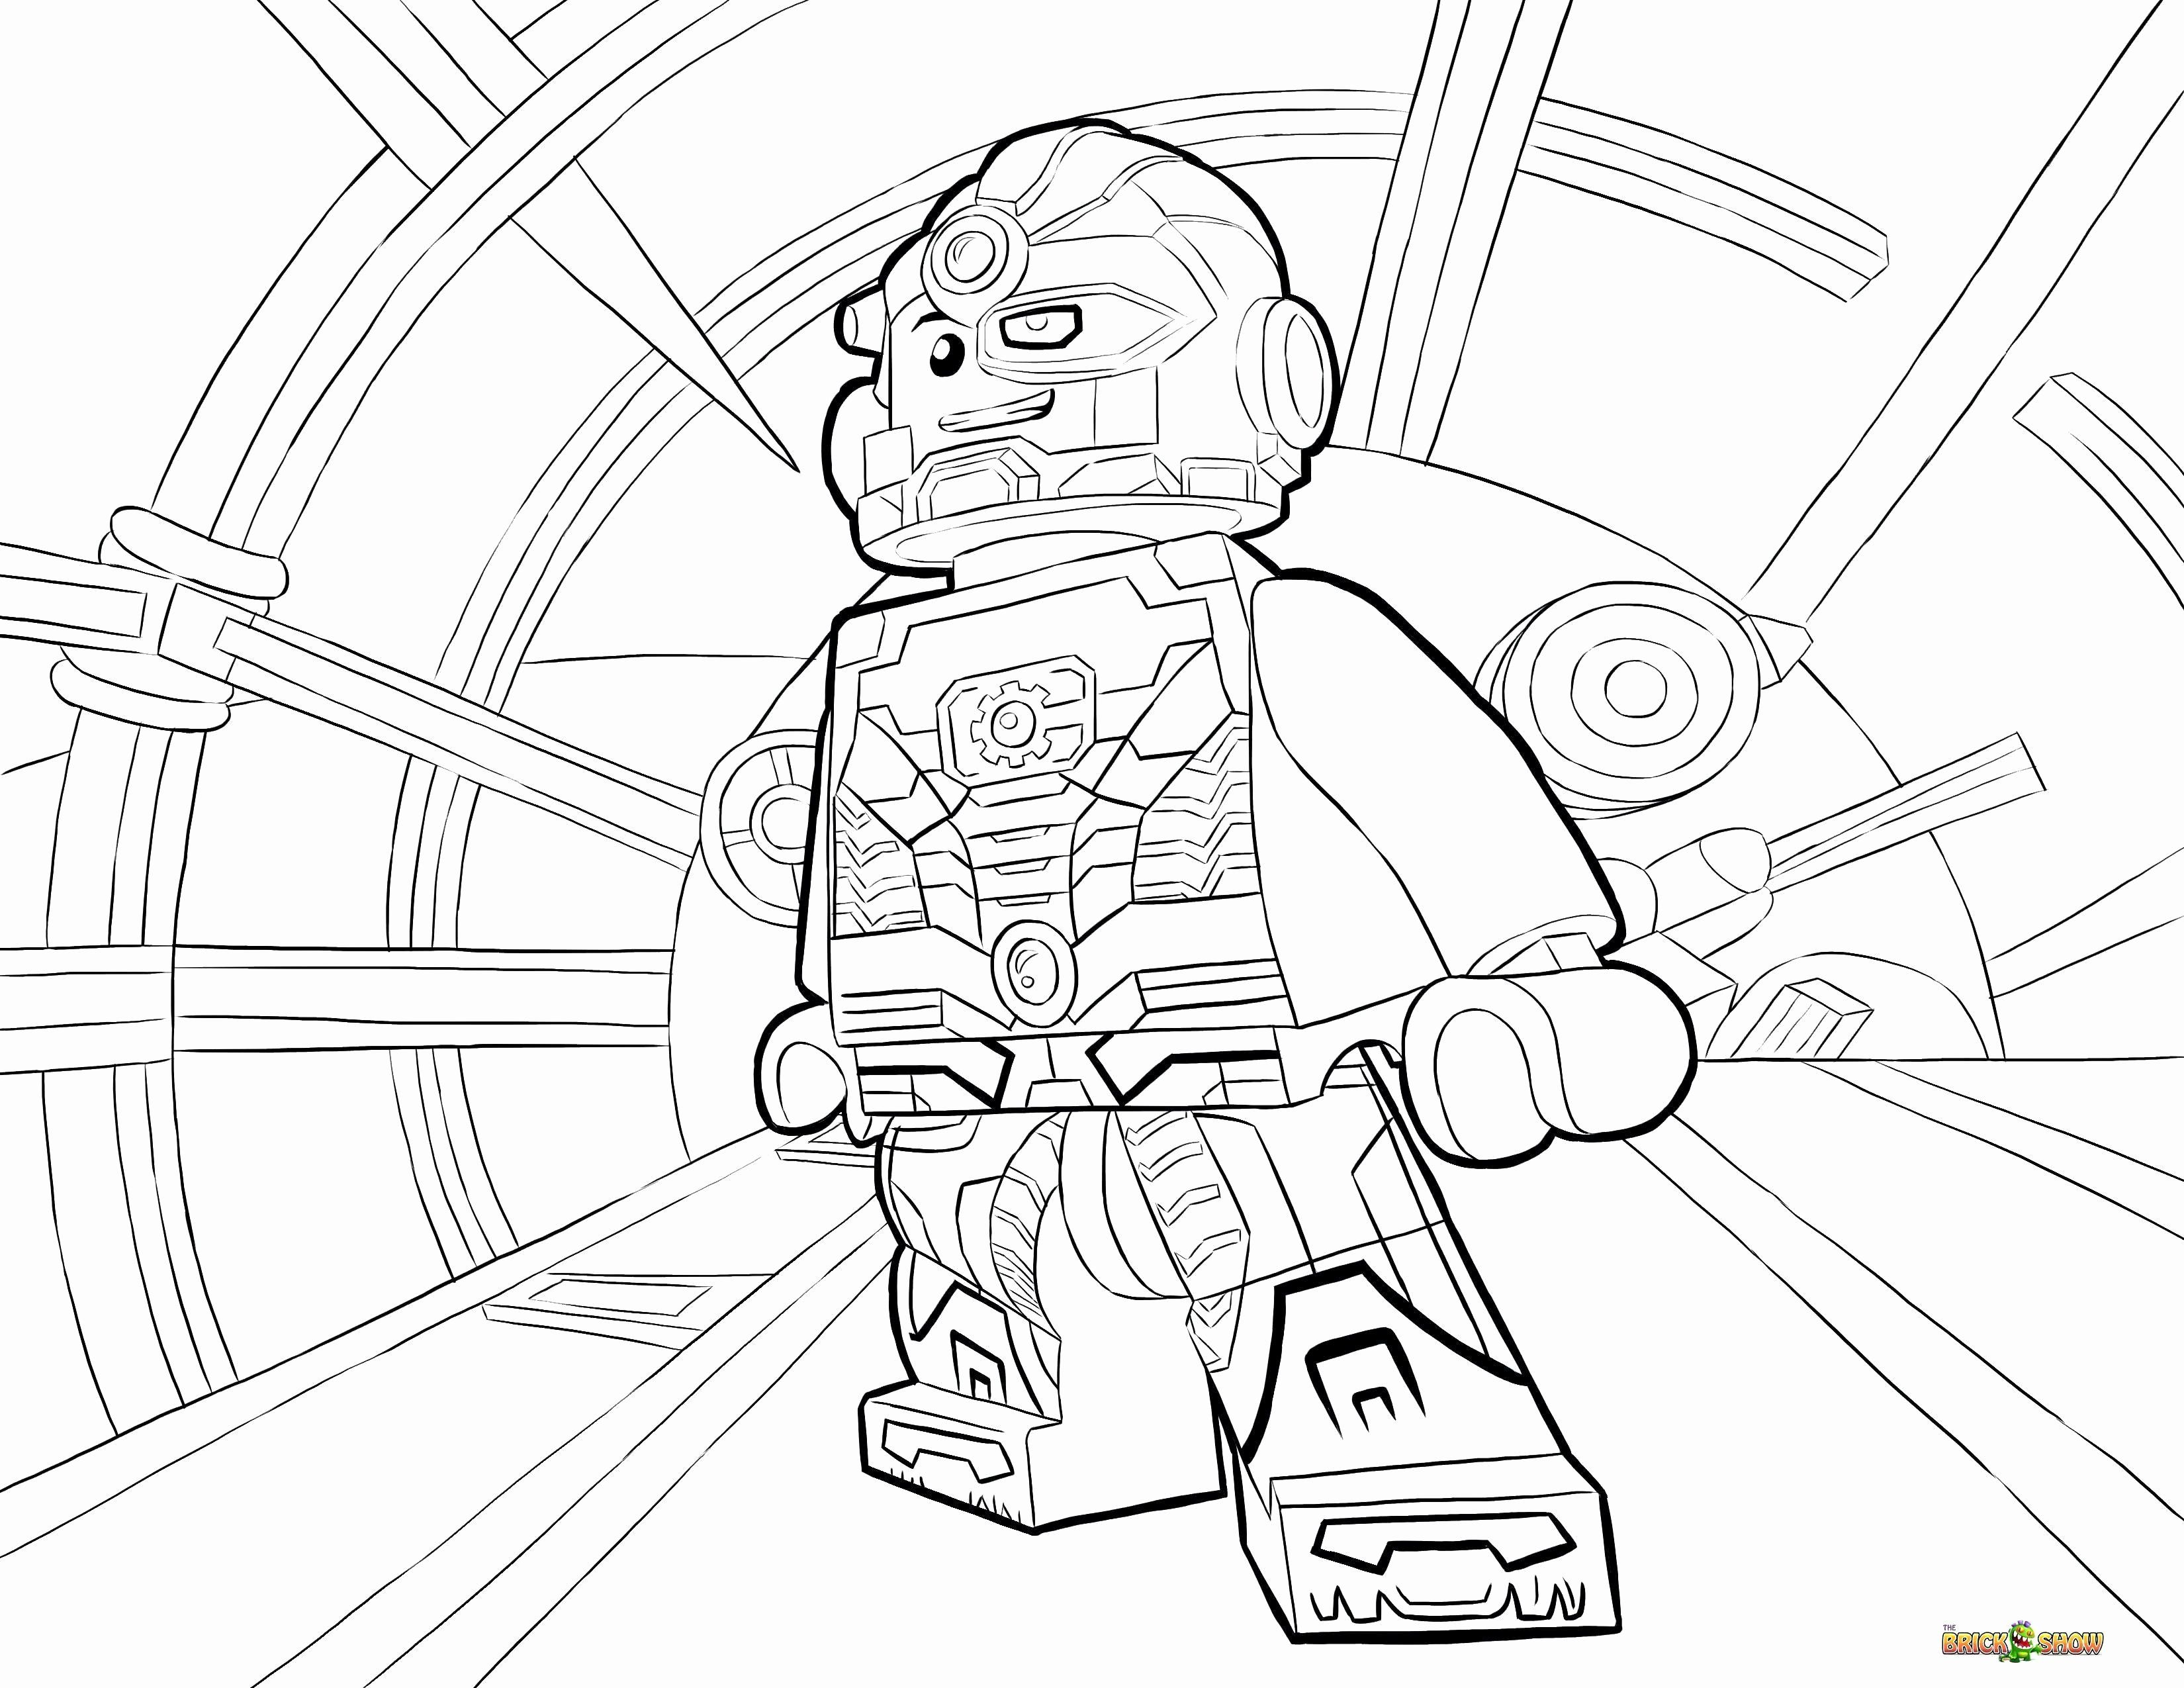 Baseball Coloring Pages Printable Awesome Star Wars Coloring Pages For Kids Elegant Christmas